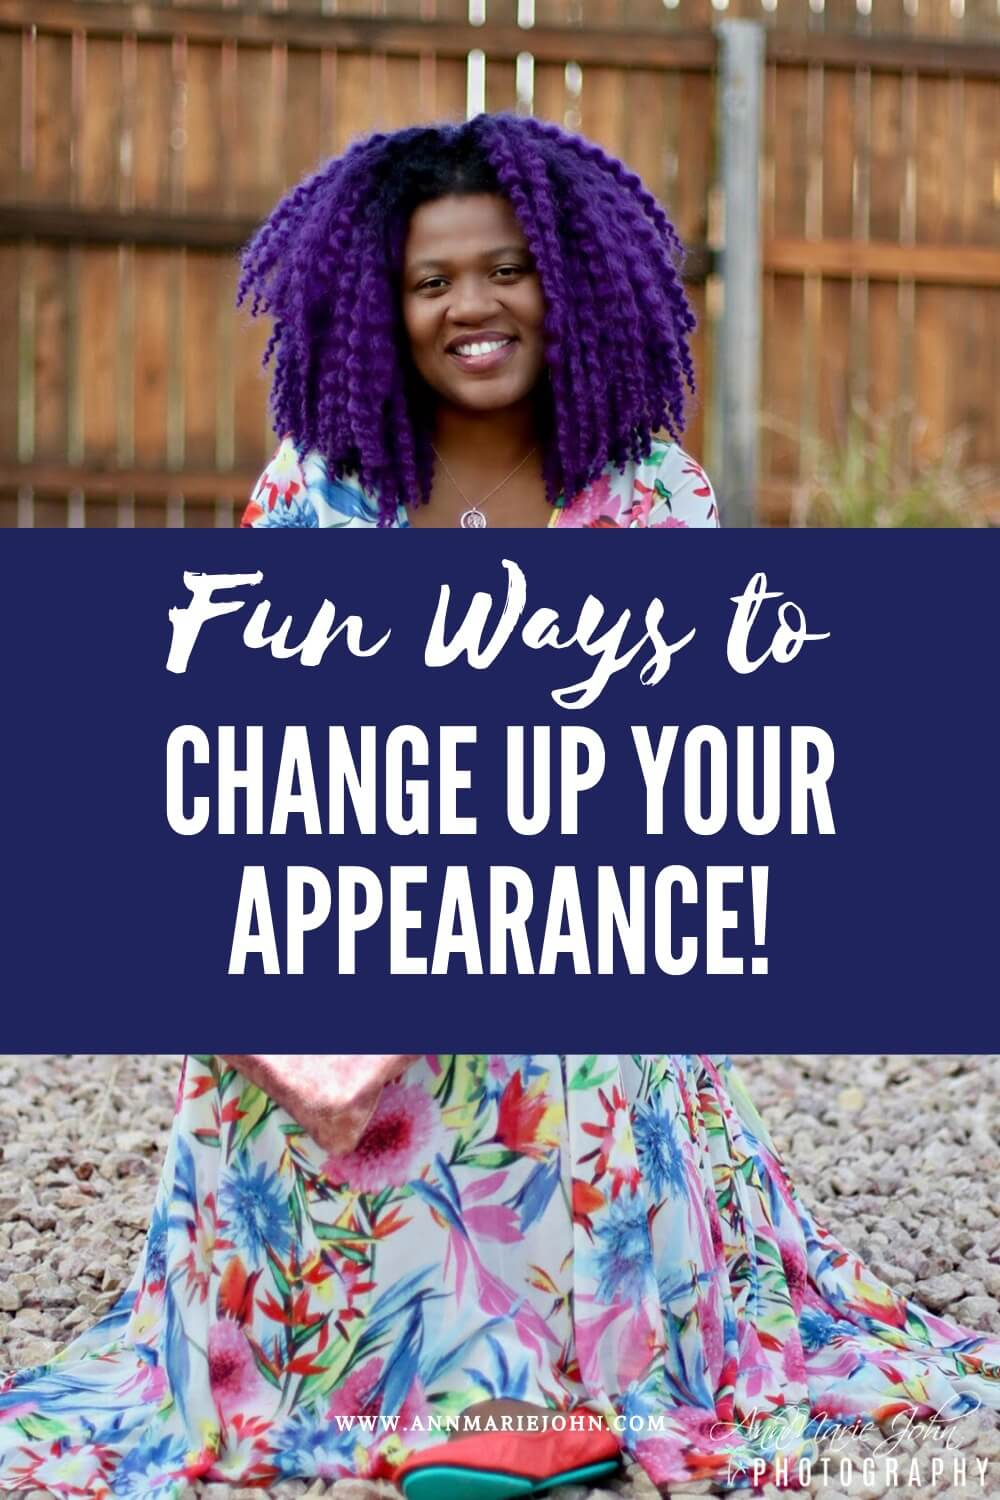 Fun Ways to Change Up Your Appearance Pinterest Image